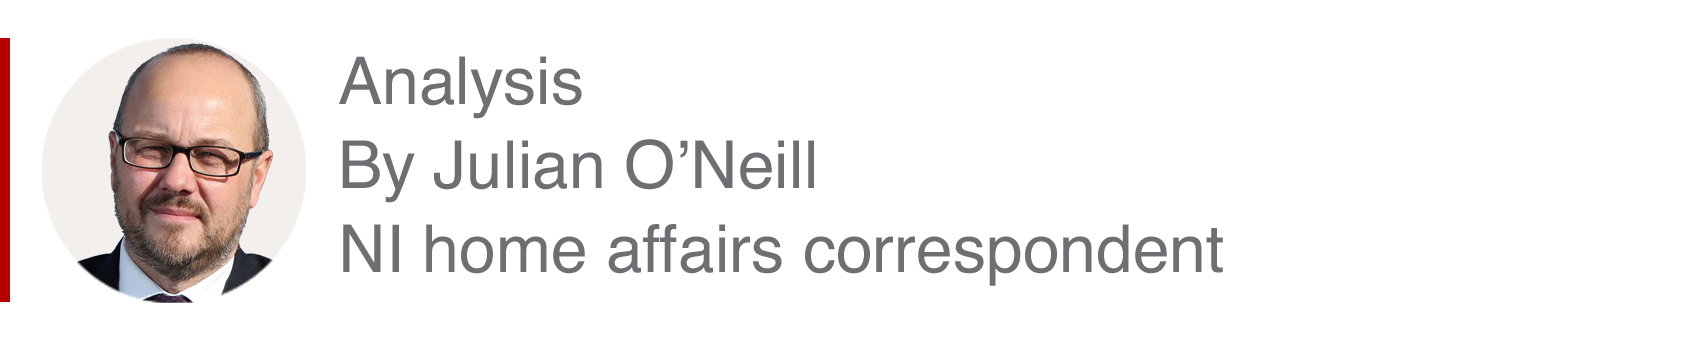 Analysis box by Julian O'Neill, NI home affairs correspondent